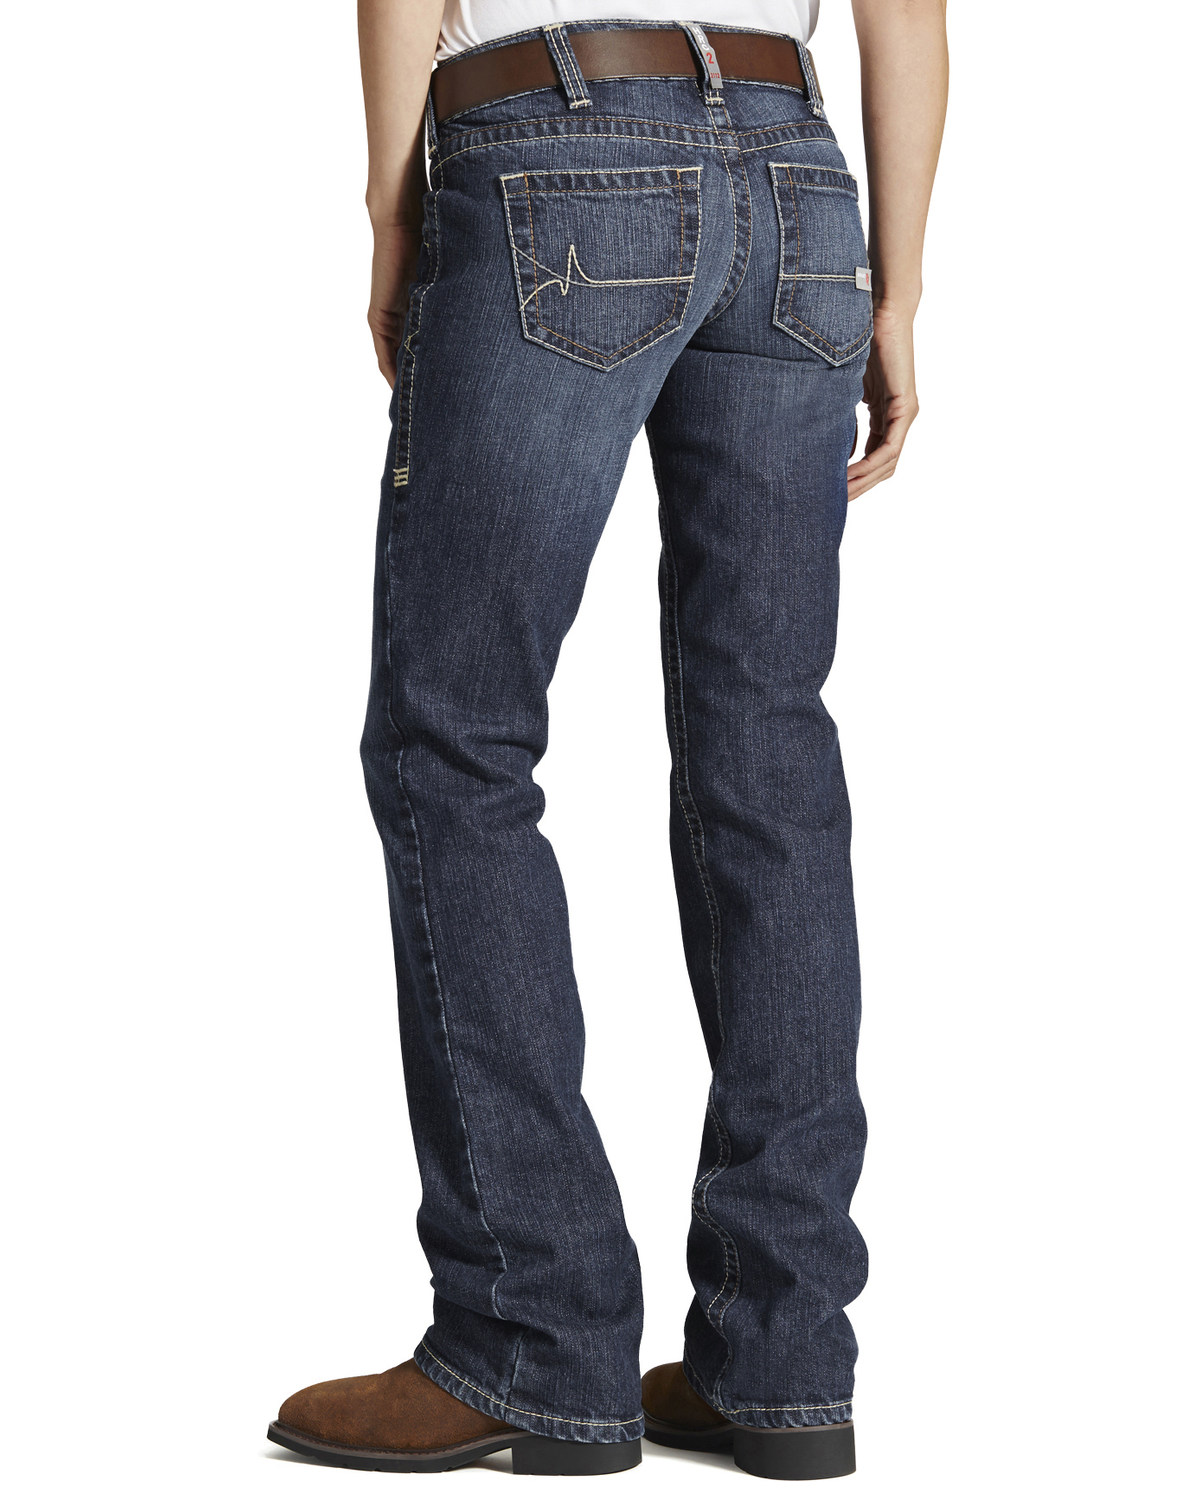 c0ffd9713781 Ariat Women s Mid Rise Flame Resistant Boot Cut Jeans